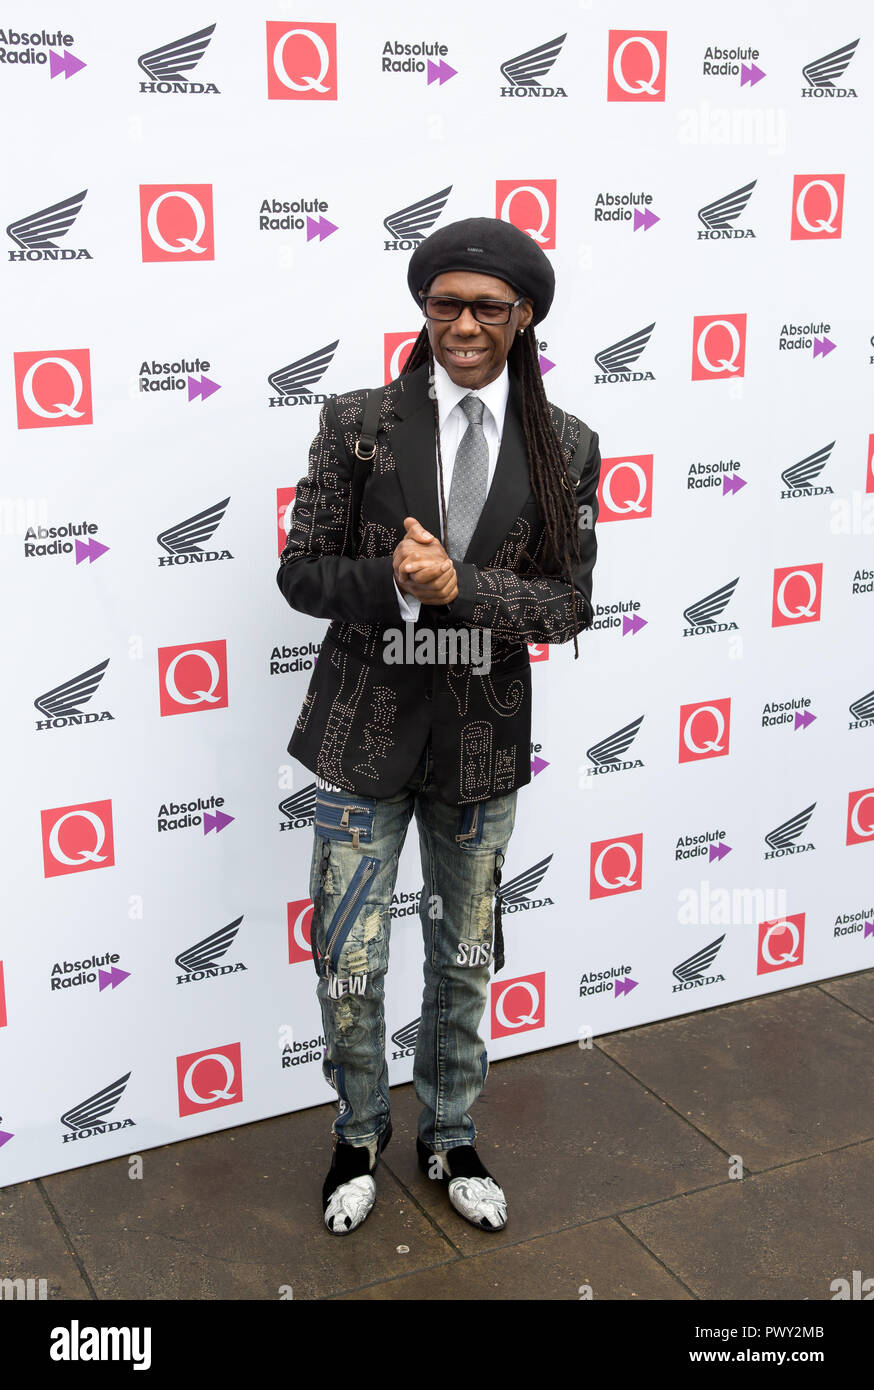 London, UK. 17th Oct 2018. The Round House Chalk Farm  London Uk 17th Oct 2018 Nile Rodgers arrives at the Q Awards 2018  in Association with Absolute Radio People In Picture: Nile Rodgers Credit: Dean Fardell/Alamy Live News - Stock Image